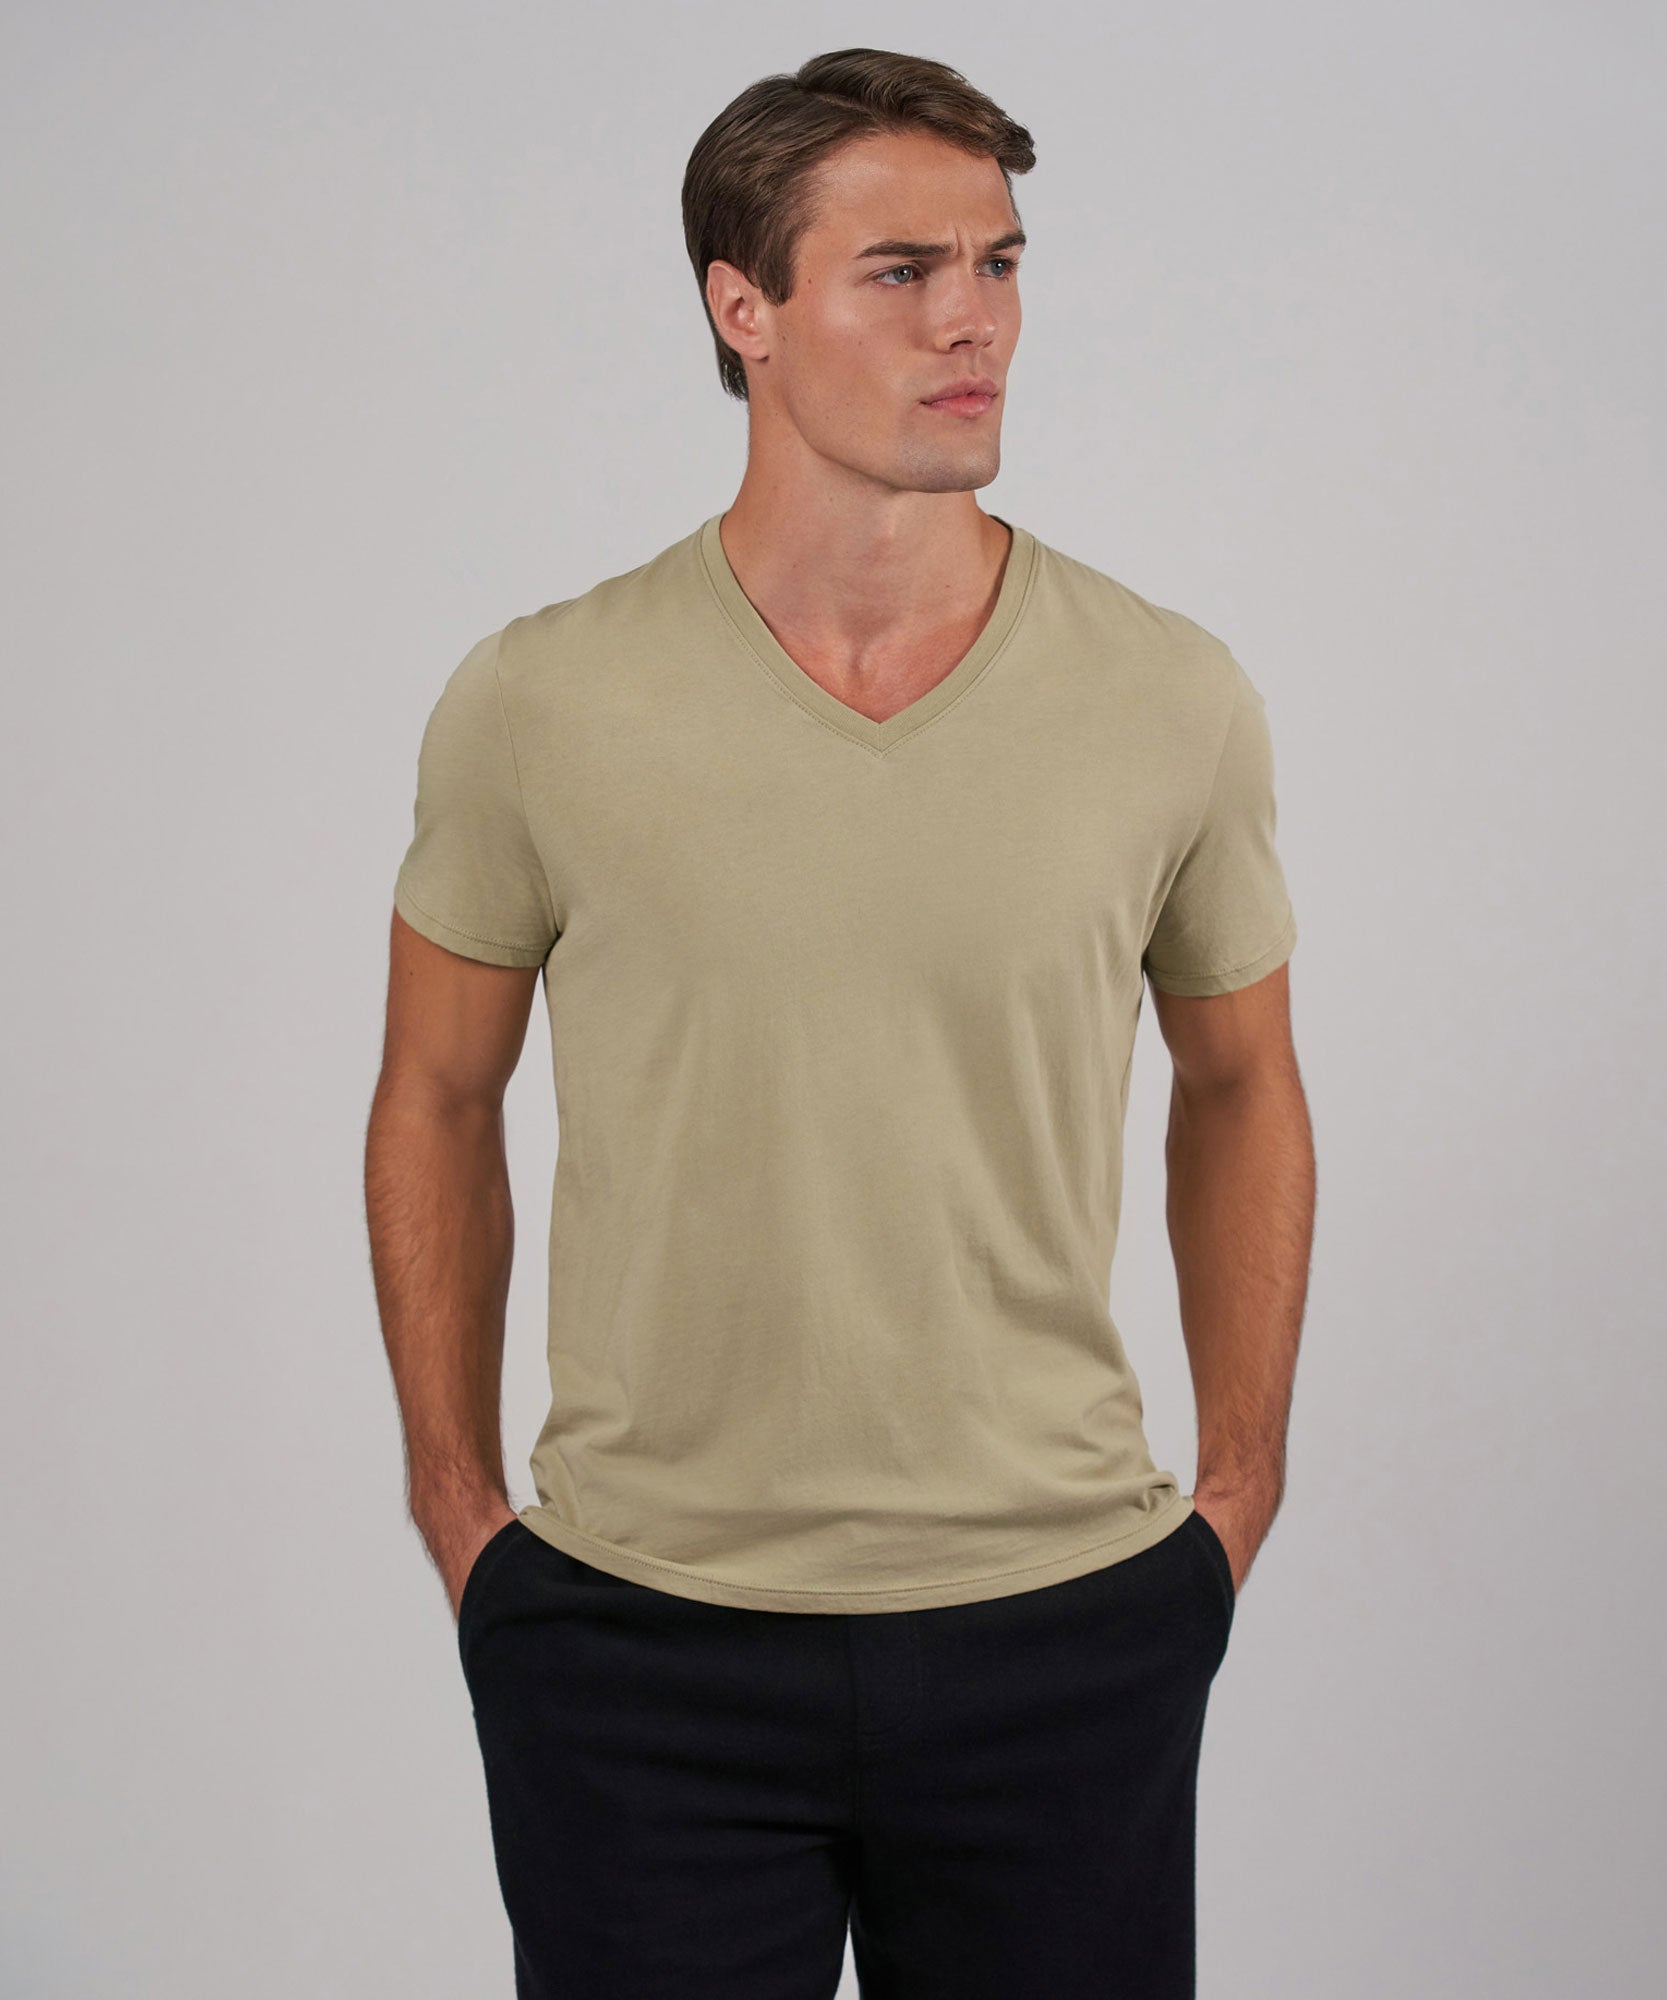 Soft Army Jersey V-Neck Tee - Men's Short Sleeve T-Shirt by ATM Anthony Thomas Melillo